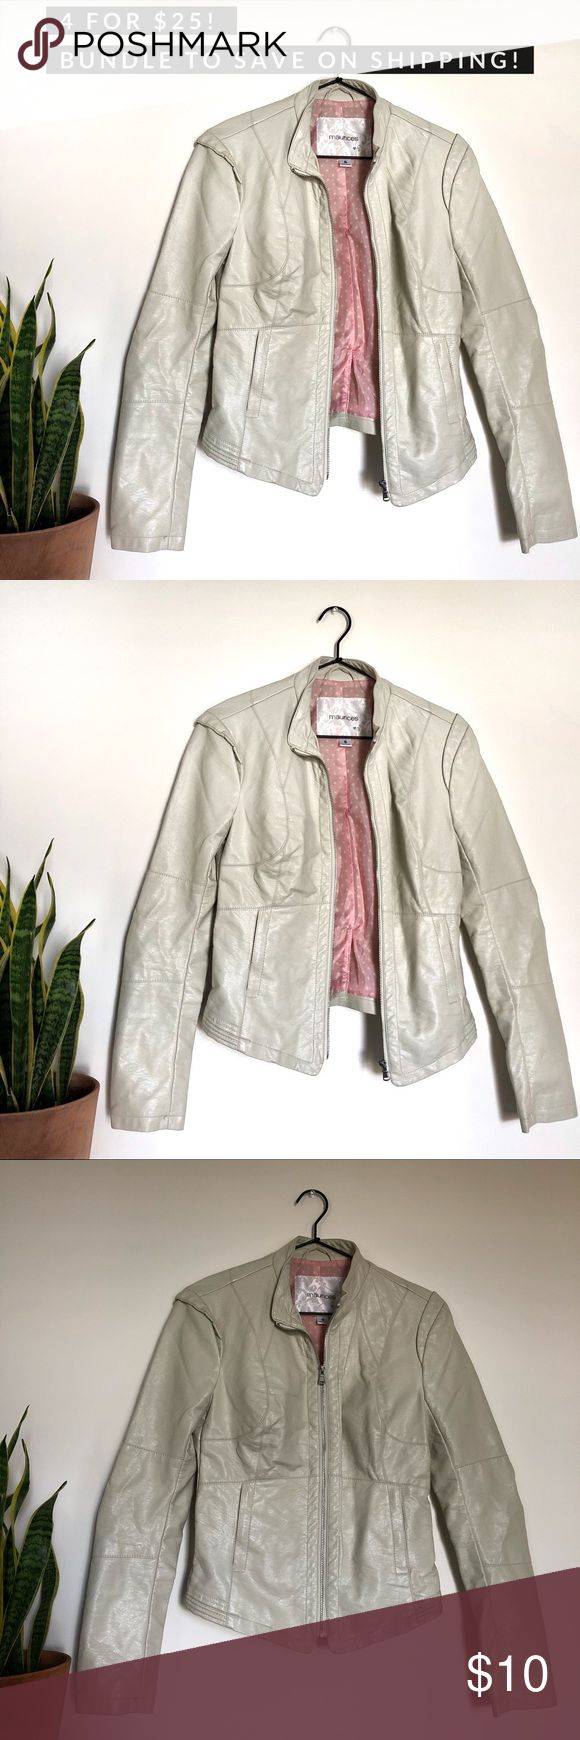 maurices Off white faux leather zip up jacket Jackets